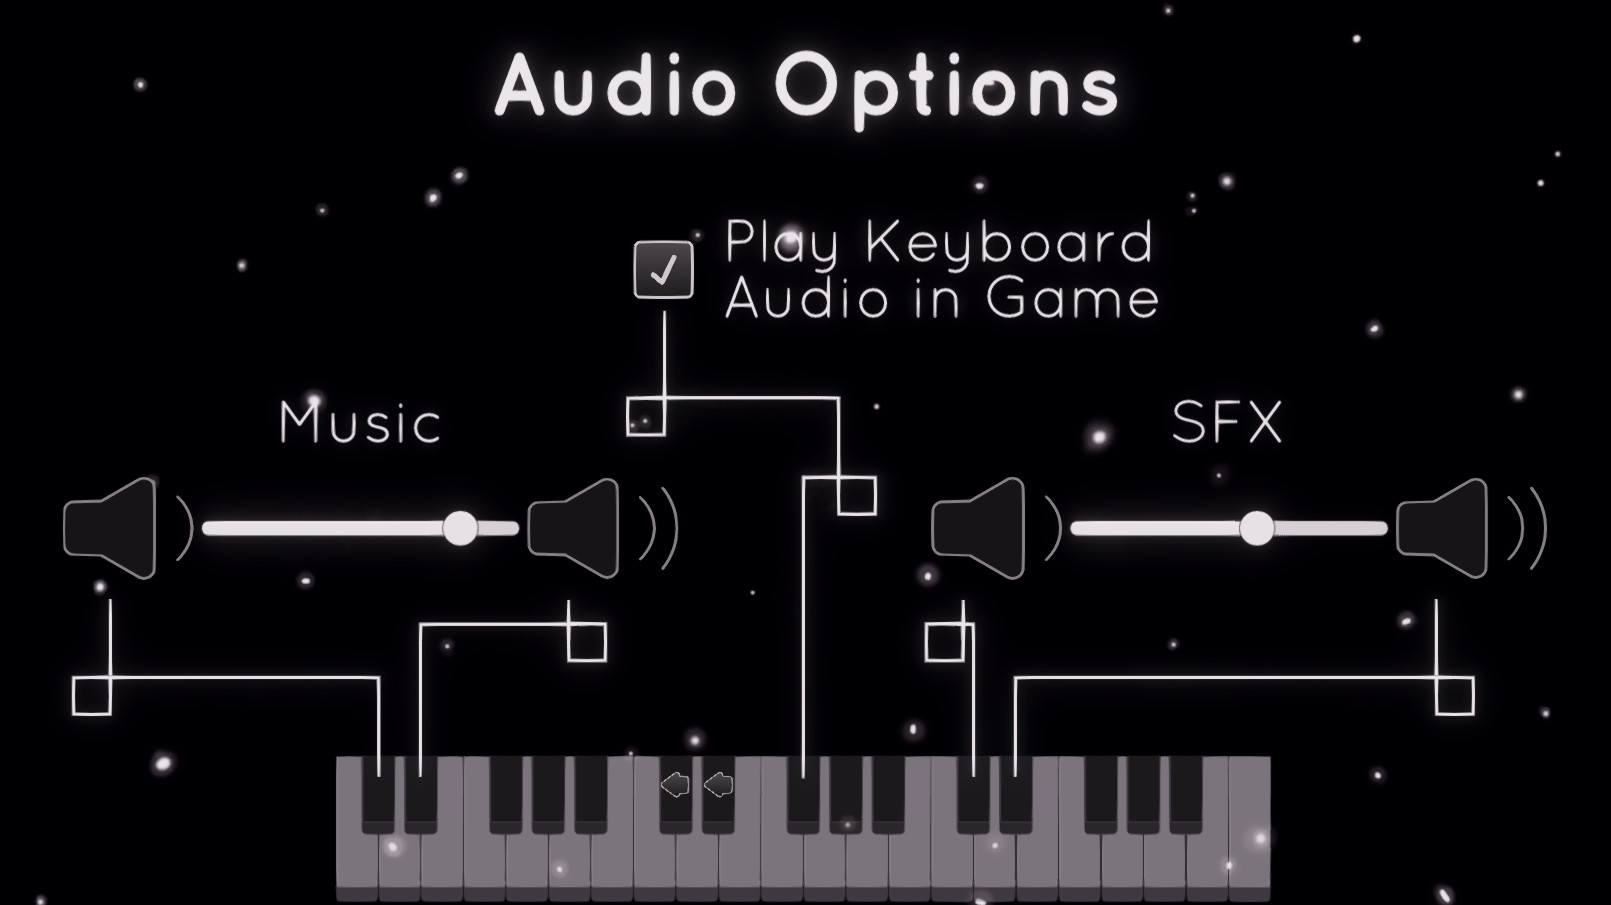 Audio Options. The toggle is mapped to one black key. The sliders have two mapped keys each, one for lowering and the other for raising.